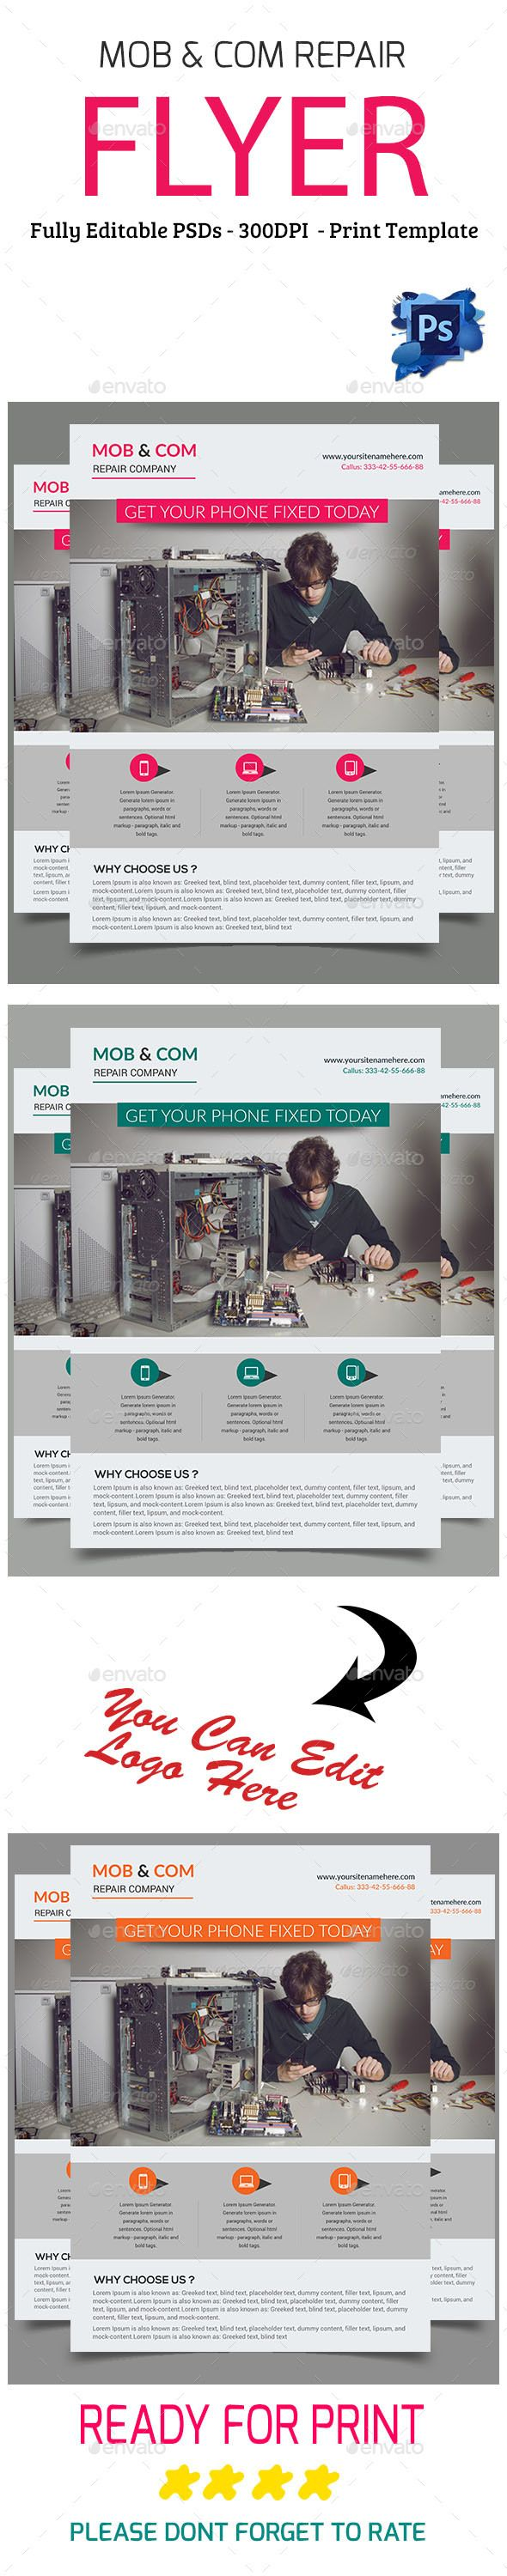 Mobile & #Computer Repair #Flyer - Flyers Print #Templates Download here: https://graphicriver.net/item/mobile-computer-repair-flyer/19576324?ref=alena994